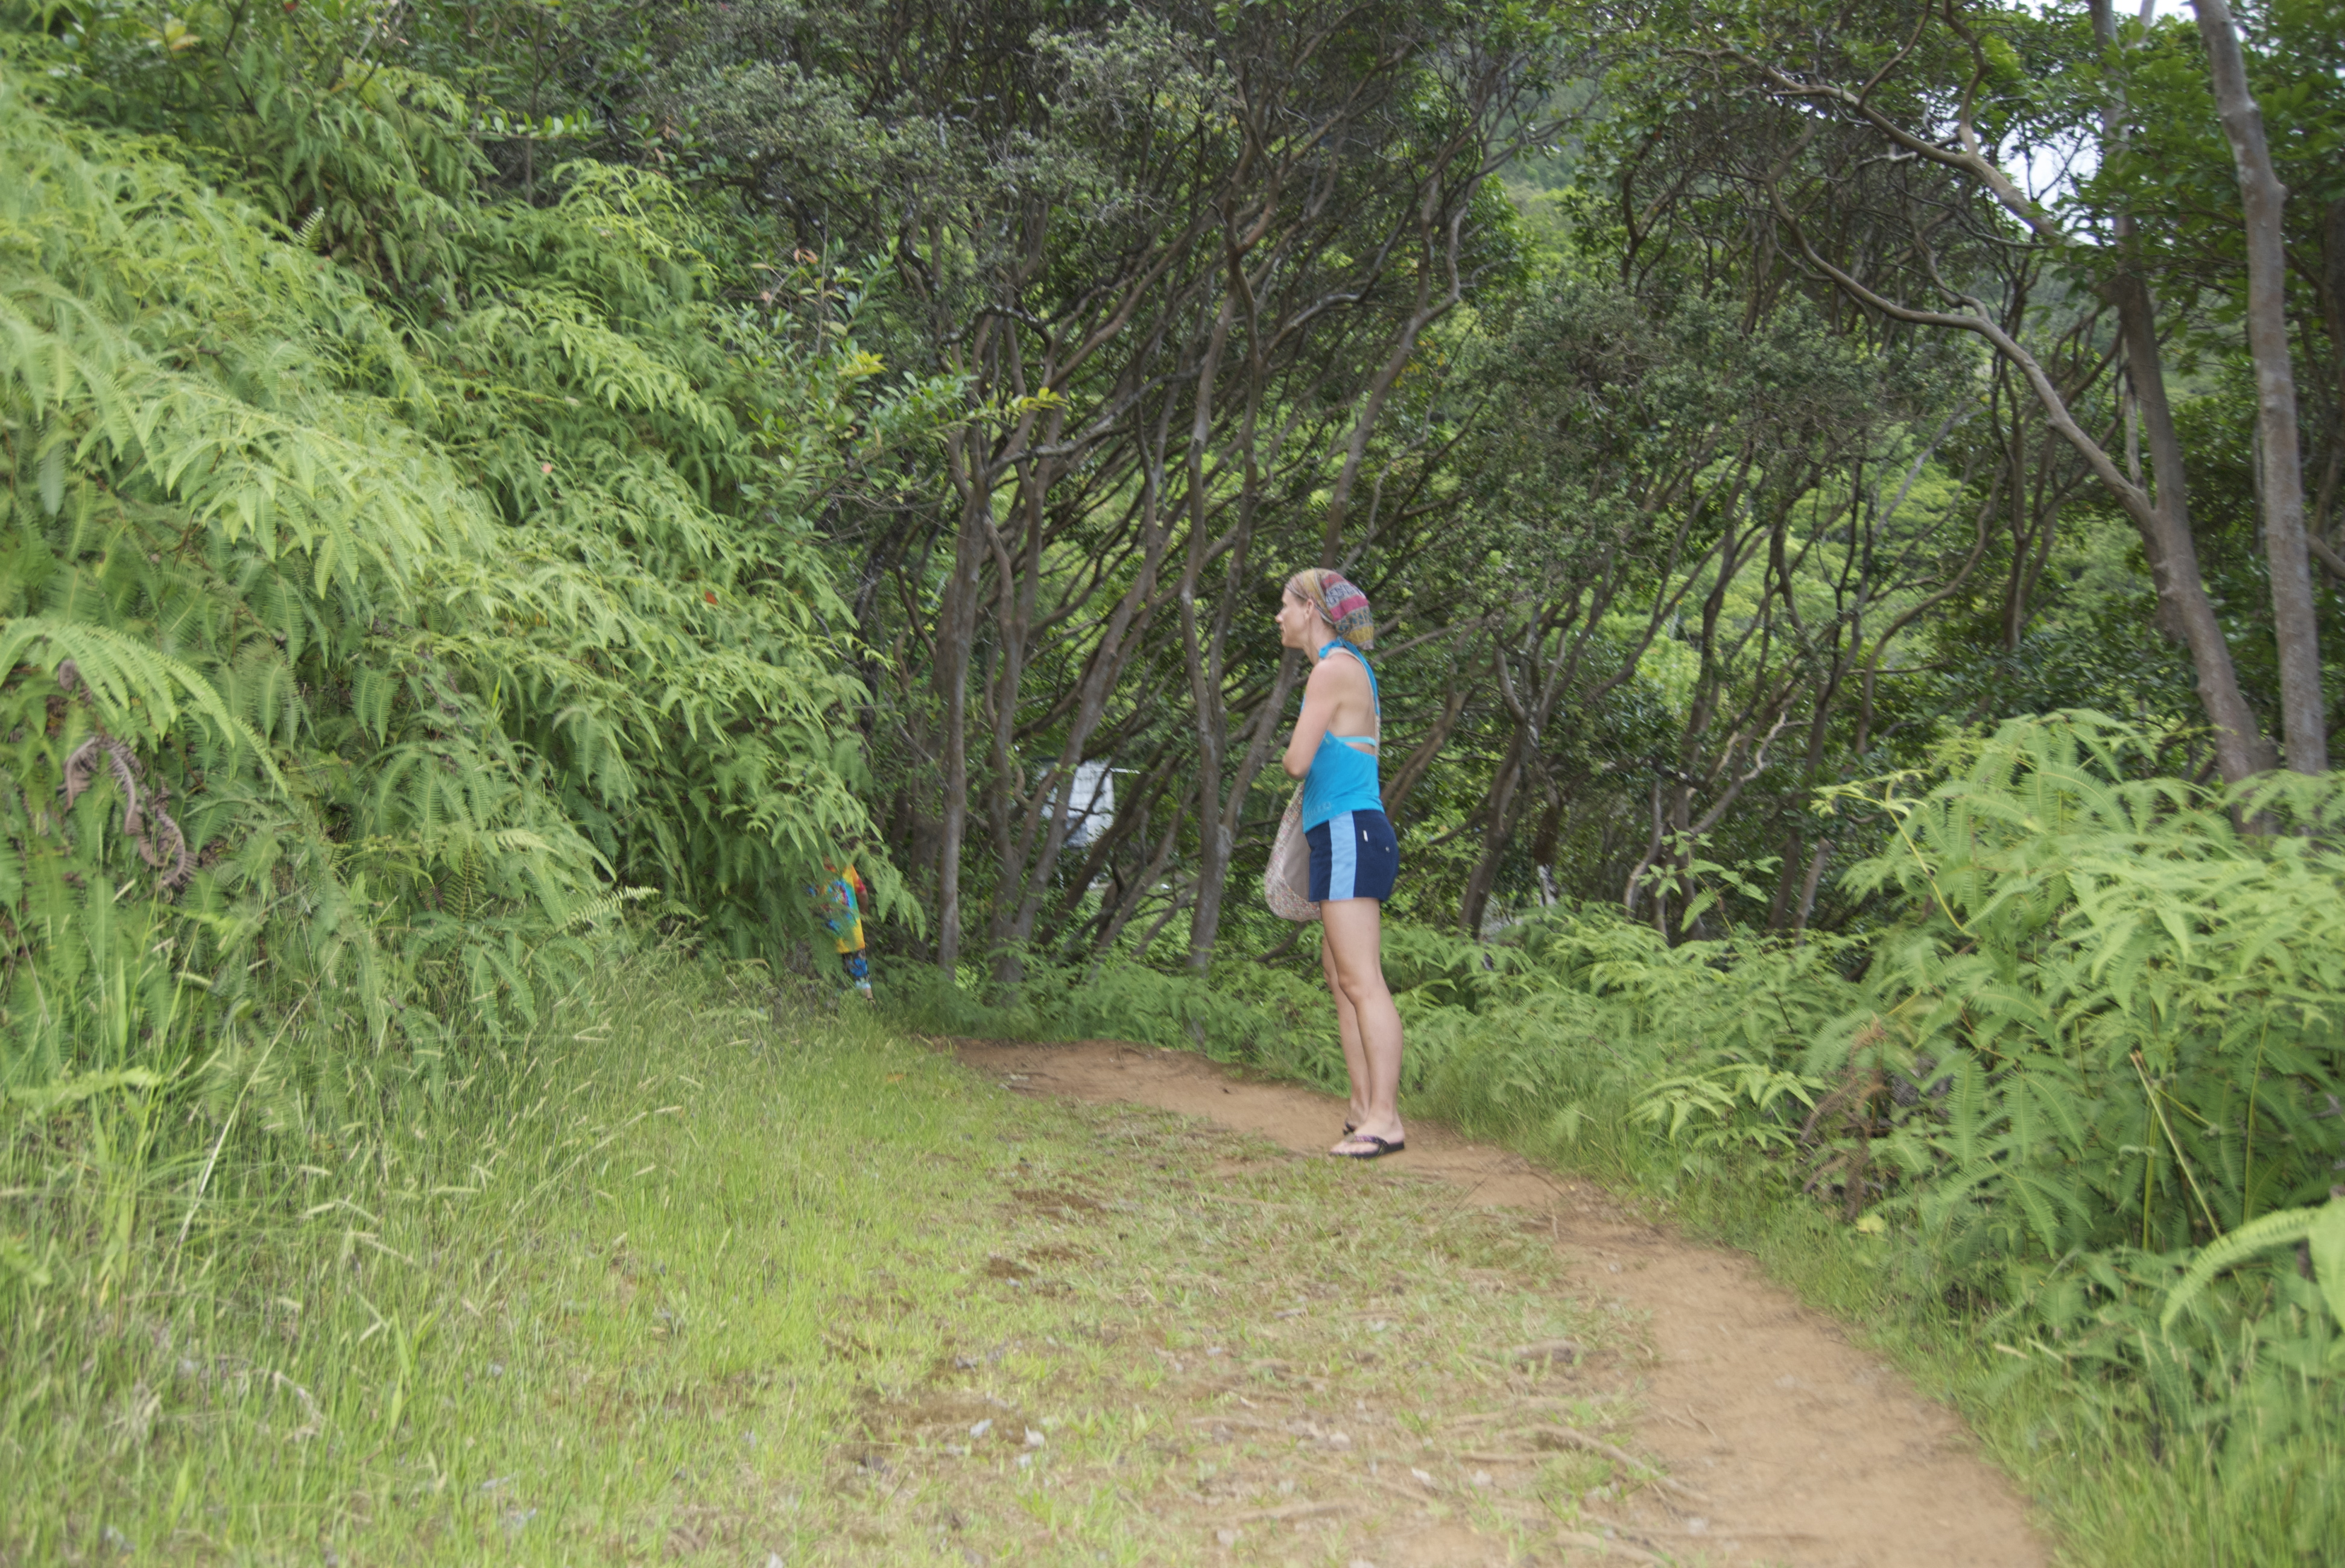 Mud, Rain, Rocks and Roots! The Maunawili Demonstration Trail ...